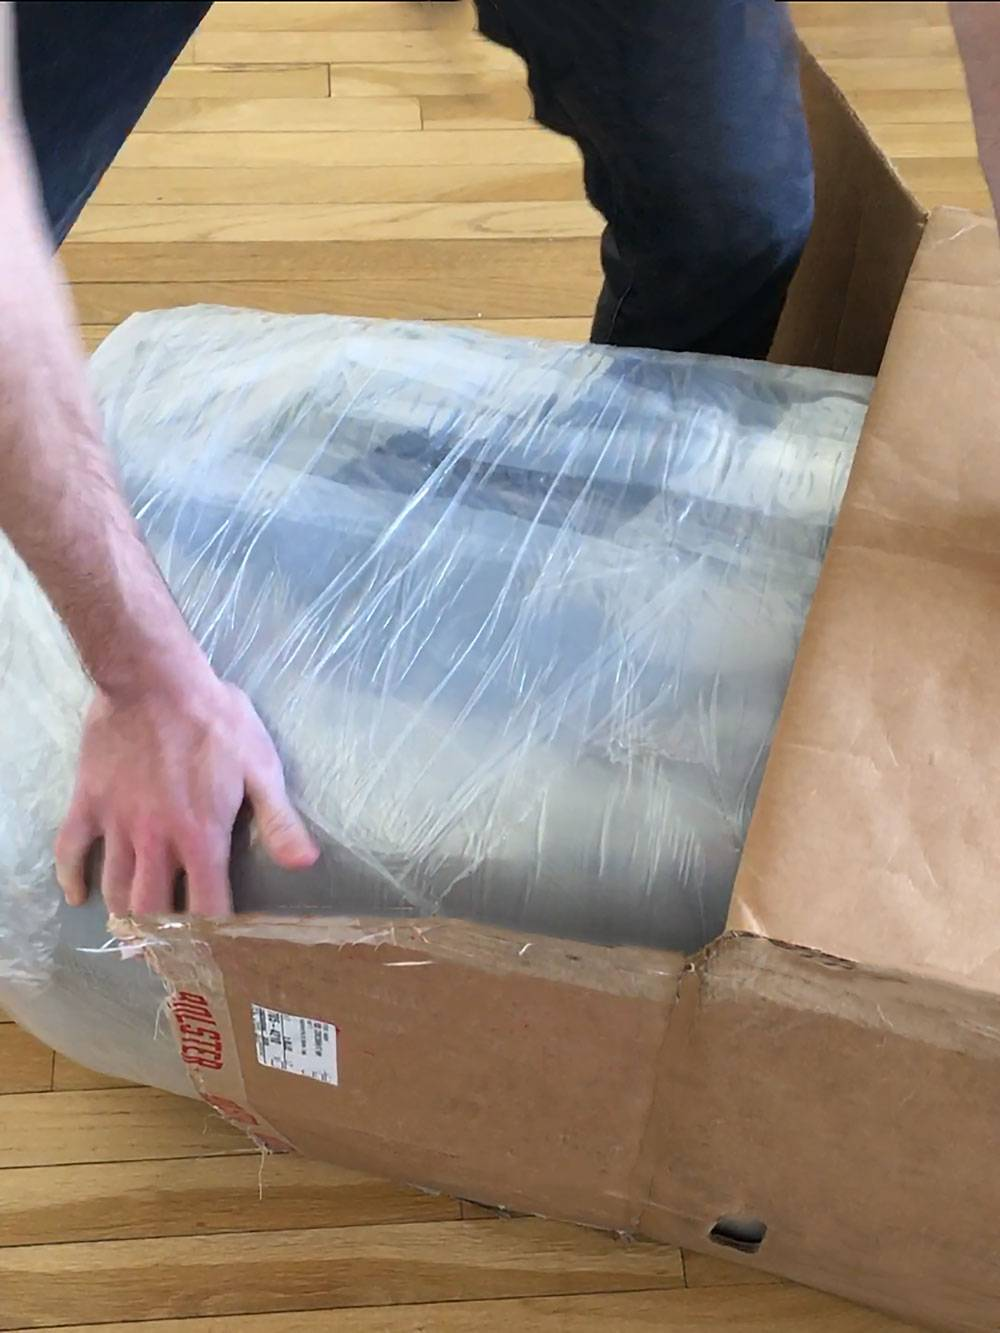 unboxing-a-bolster-matter-removing-the-protective-plastic.jpg